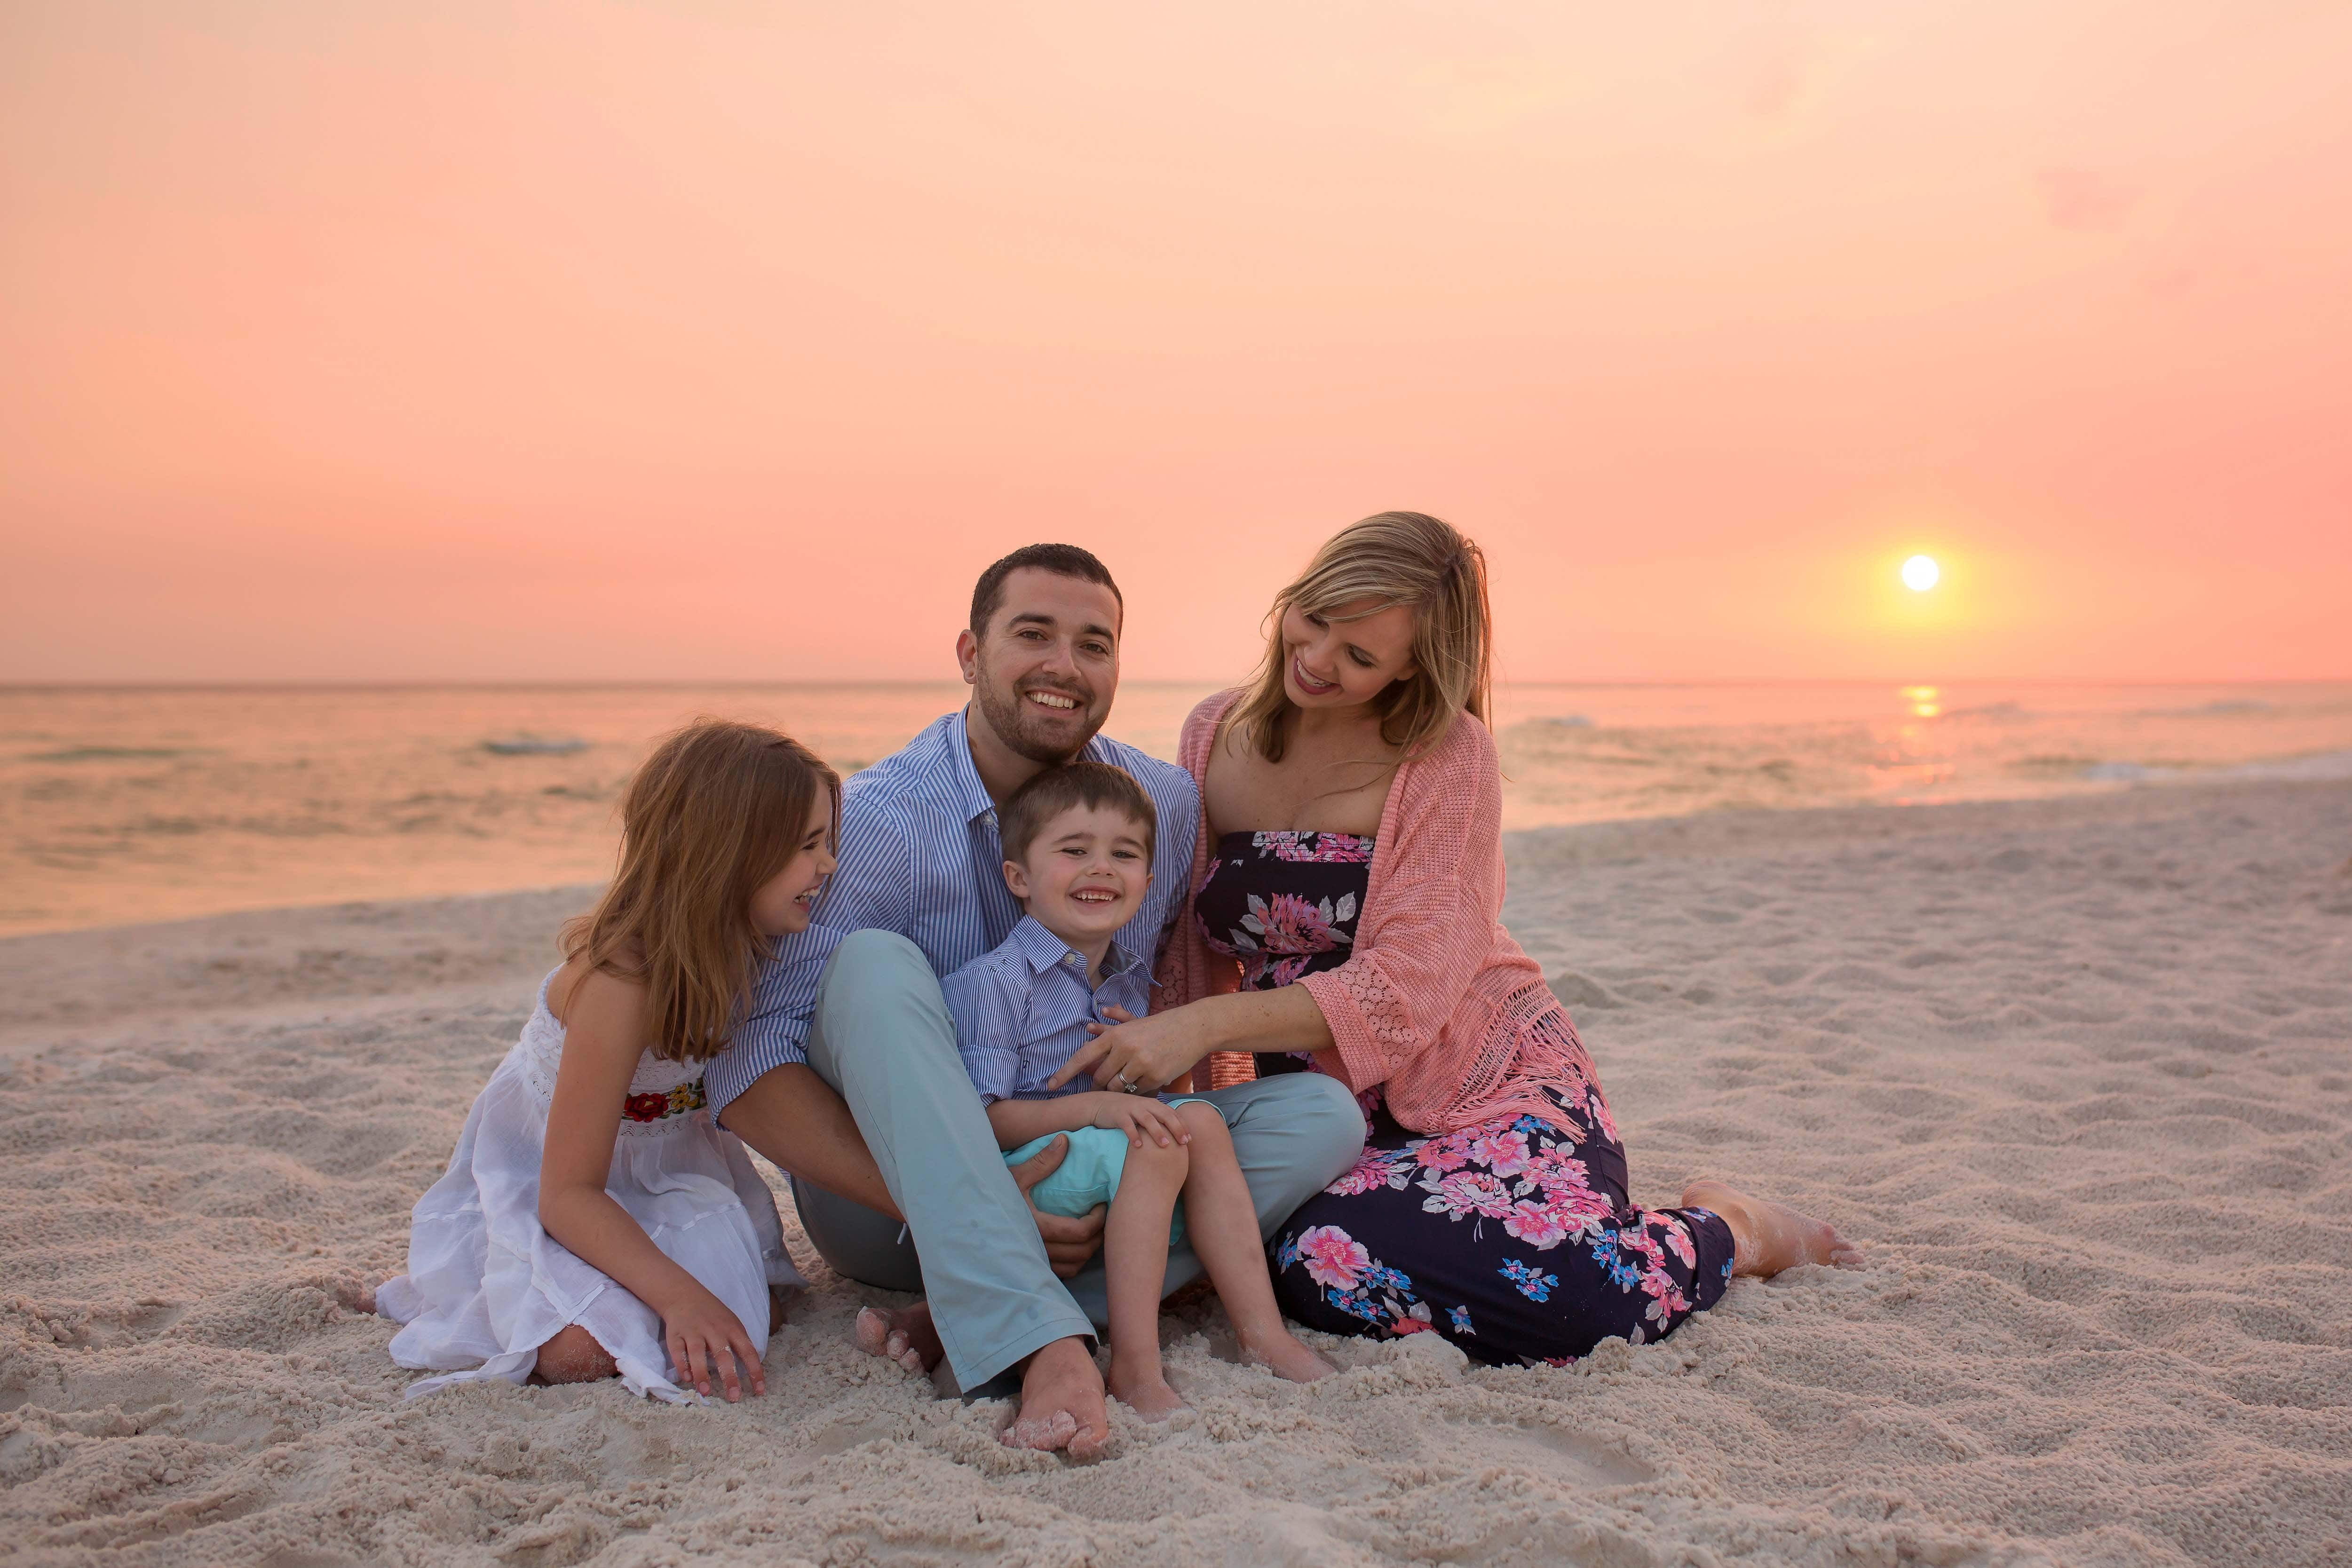 Family Photography in Seaside - LJennings Photography